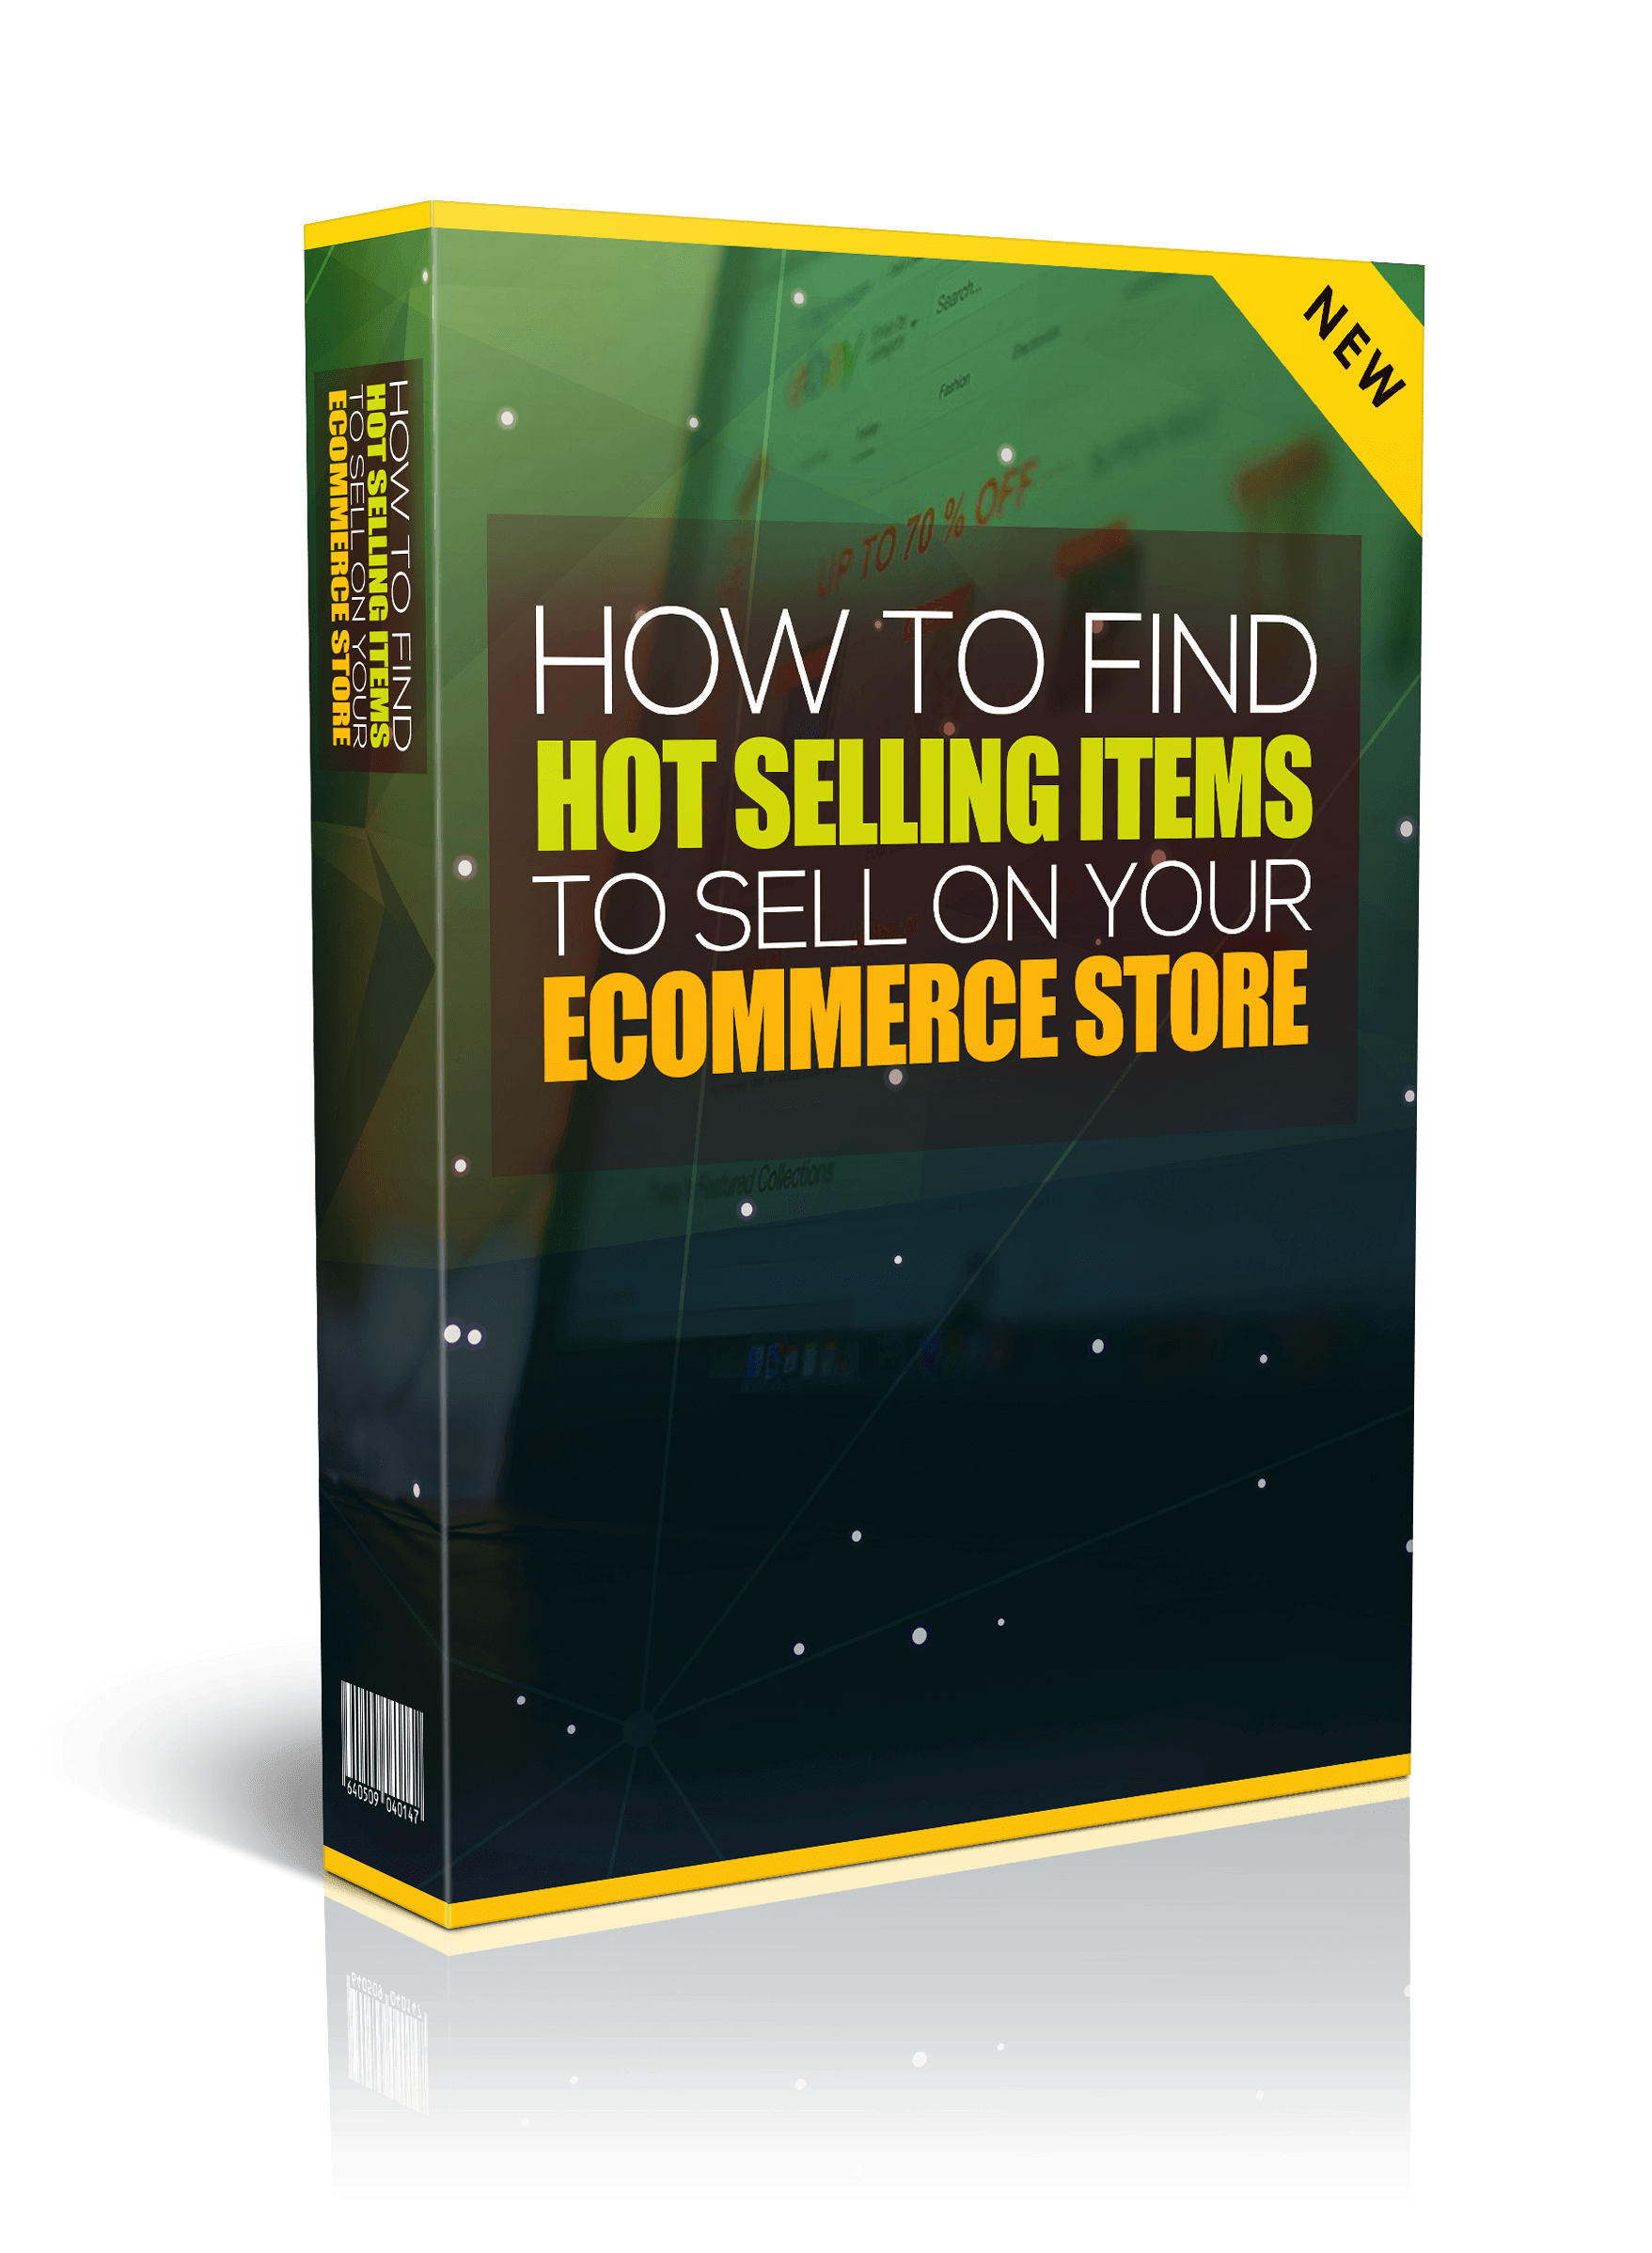 How-To-Find-Hot-Selling-Items-To-Sell-On-Your-Ecommerce-Store